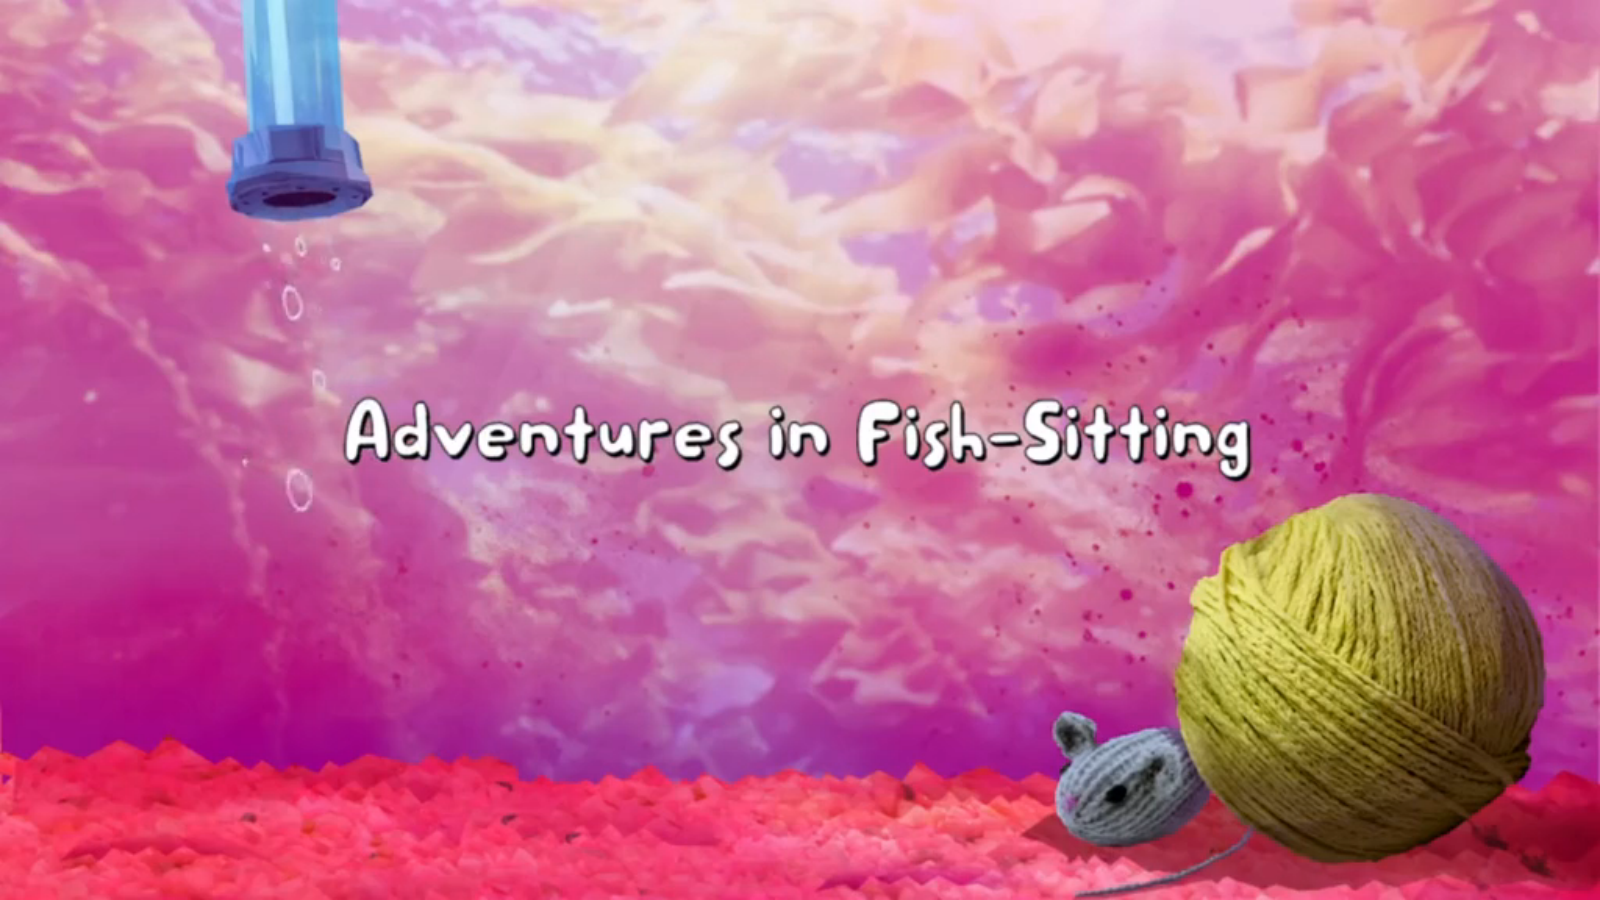 Adventures in Fish-Sitting